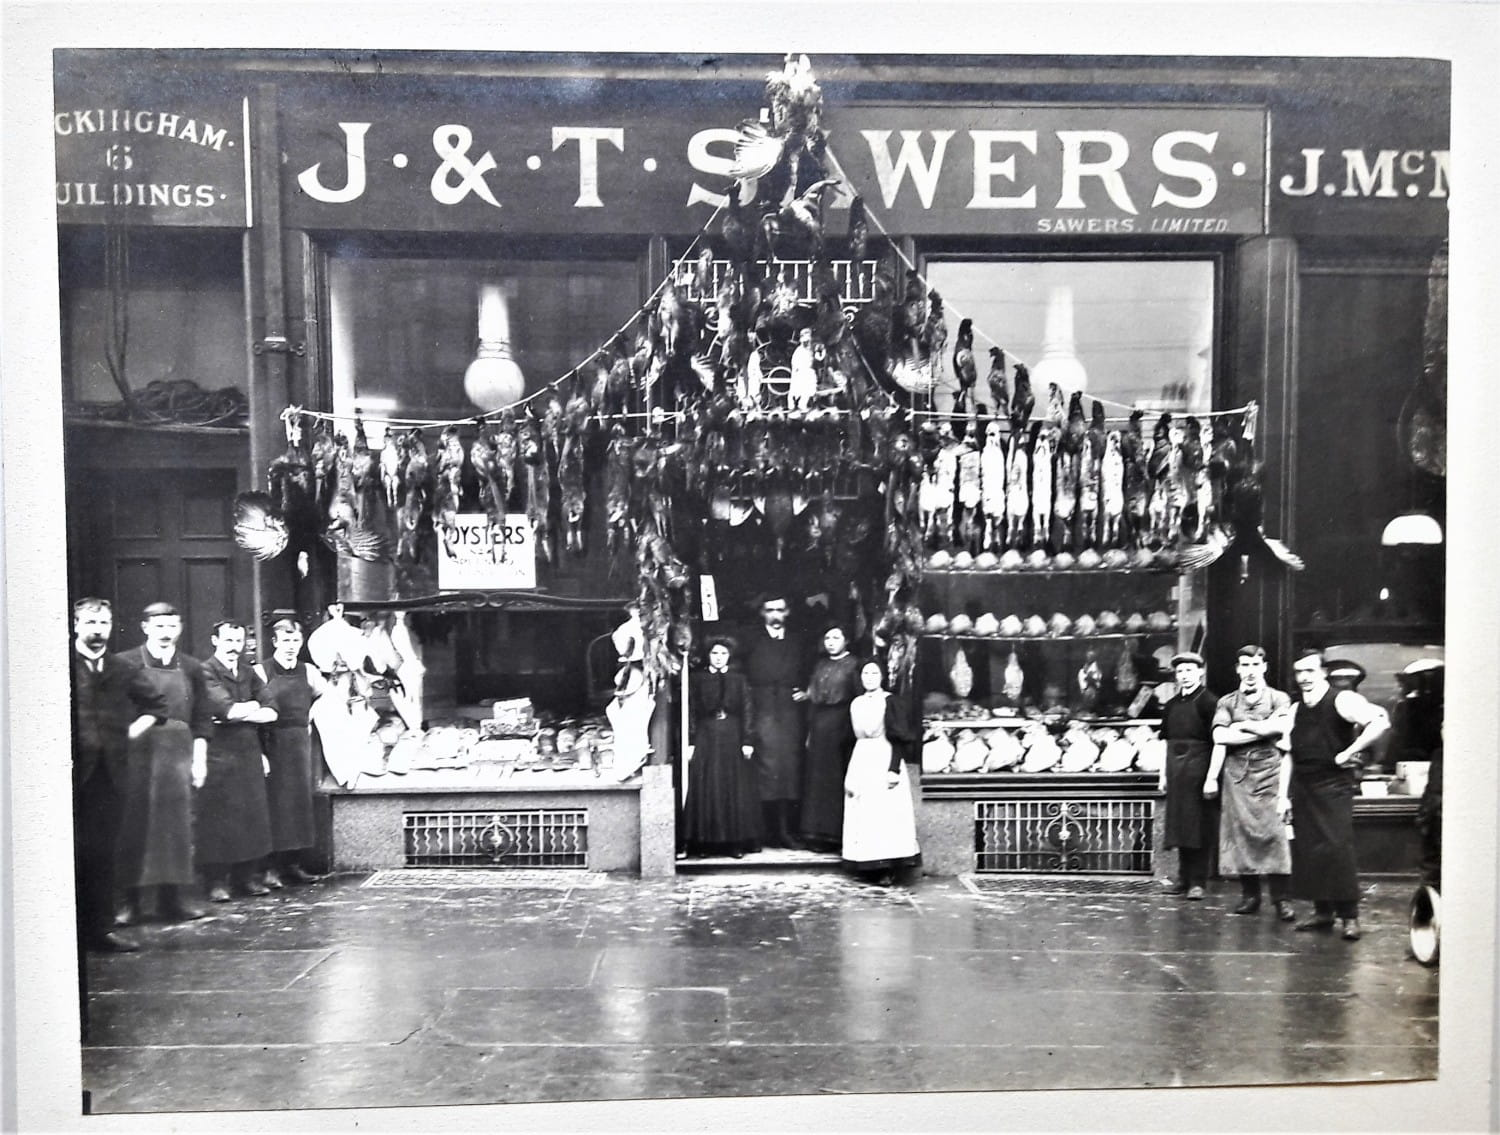 The Howard Street shop and staff in 1899 (Picture: John Sawers)